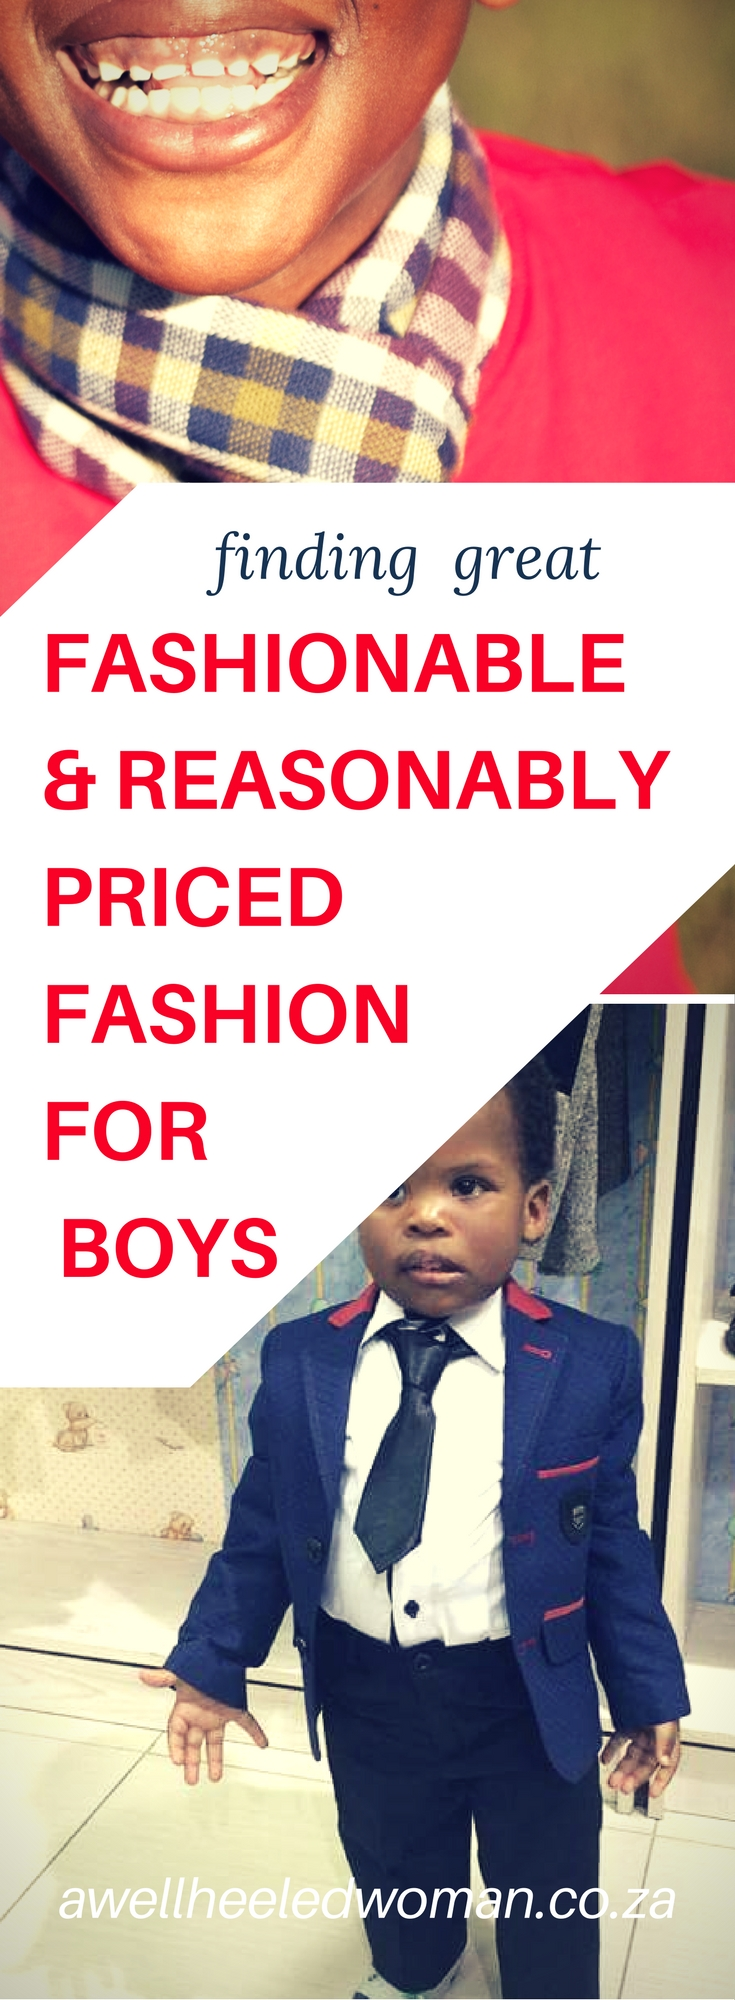 For the little boys in your life. Fashion inspiration on how to dress you rboys beautifully, as well as a list of South African shops where you can buy beautiful boys clothes